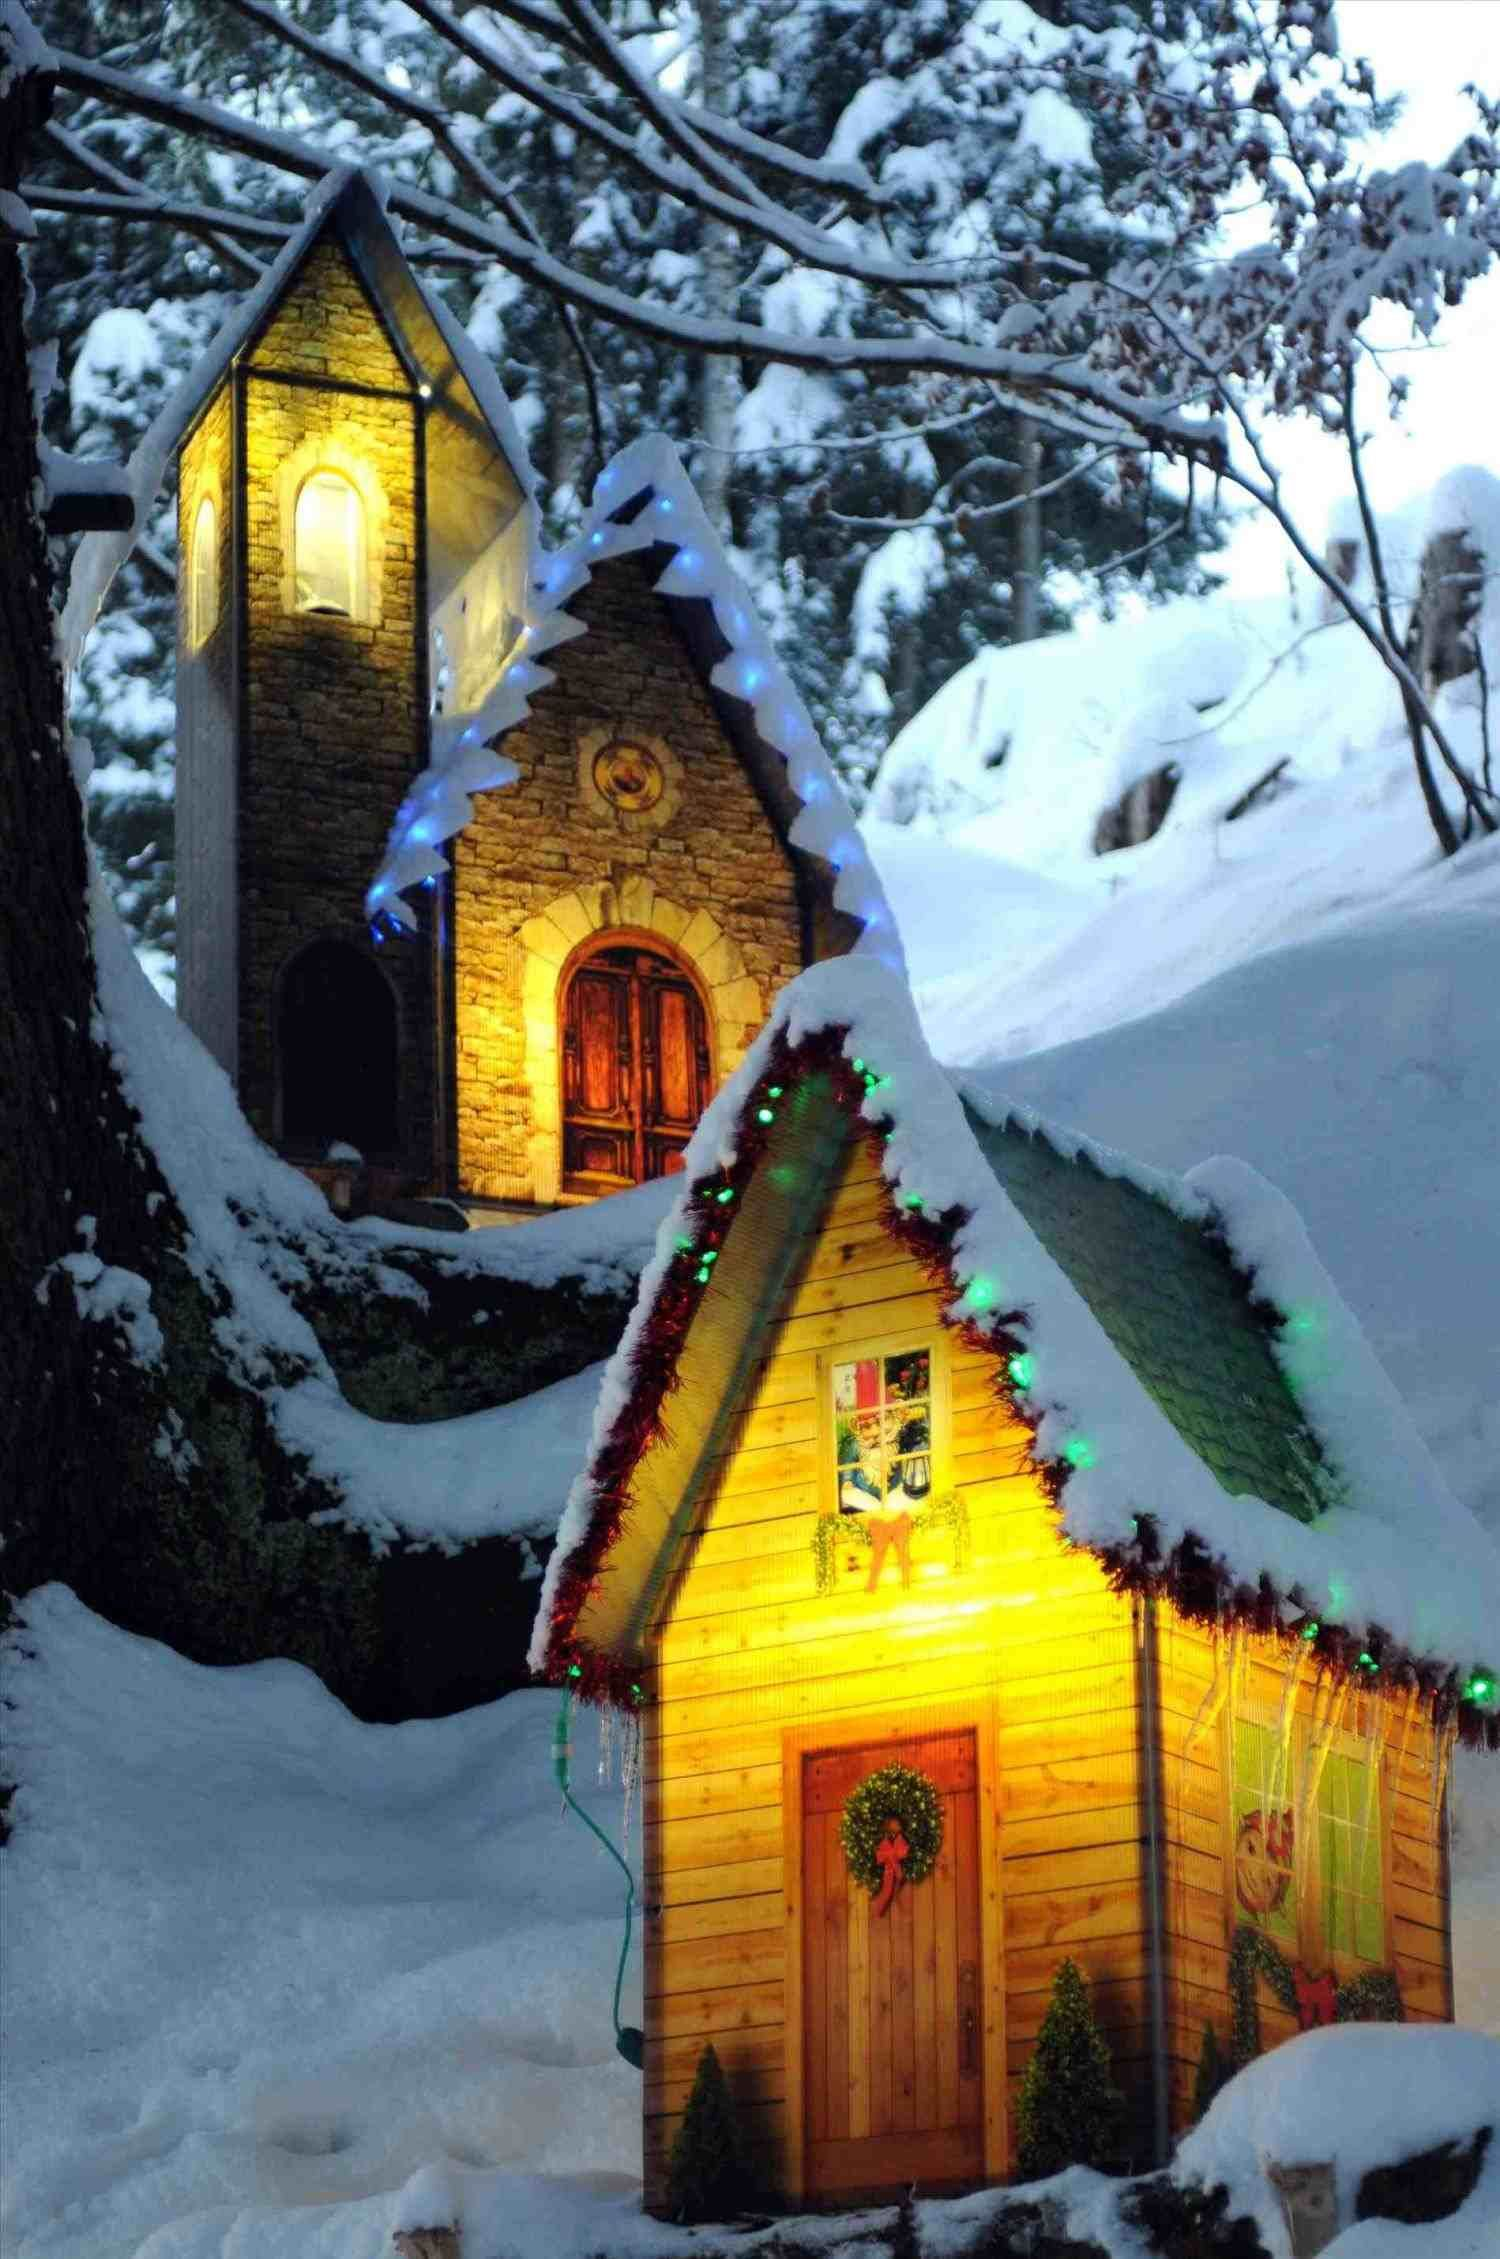 New Post norman rockwell christmas village | xmast | Pinterest ...